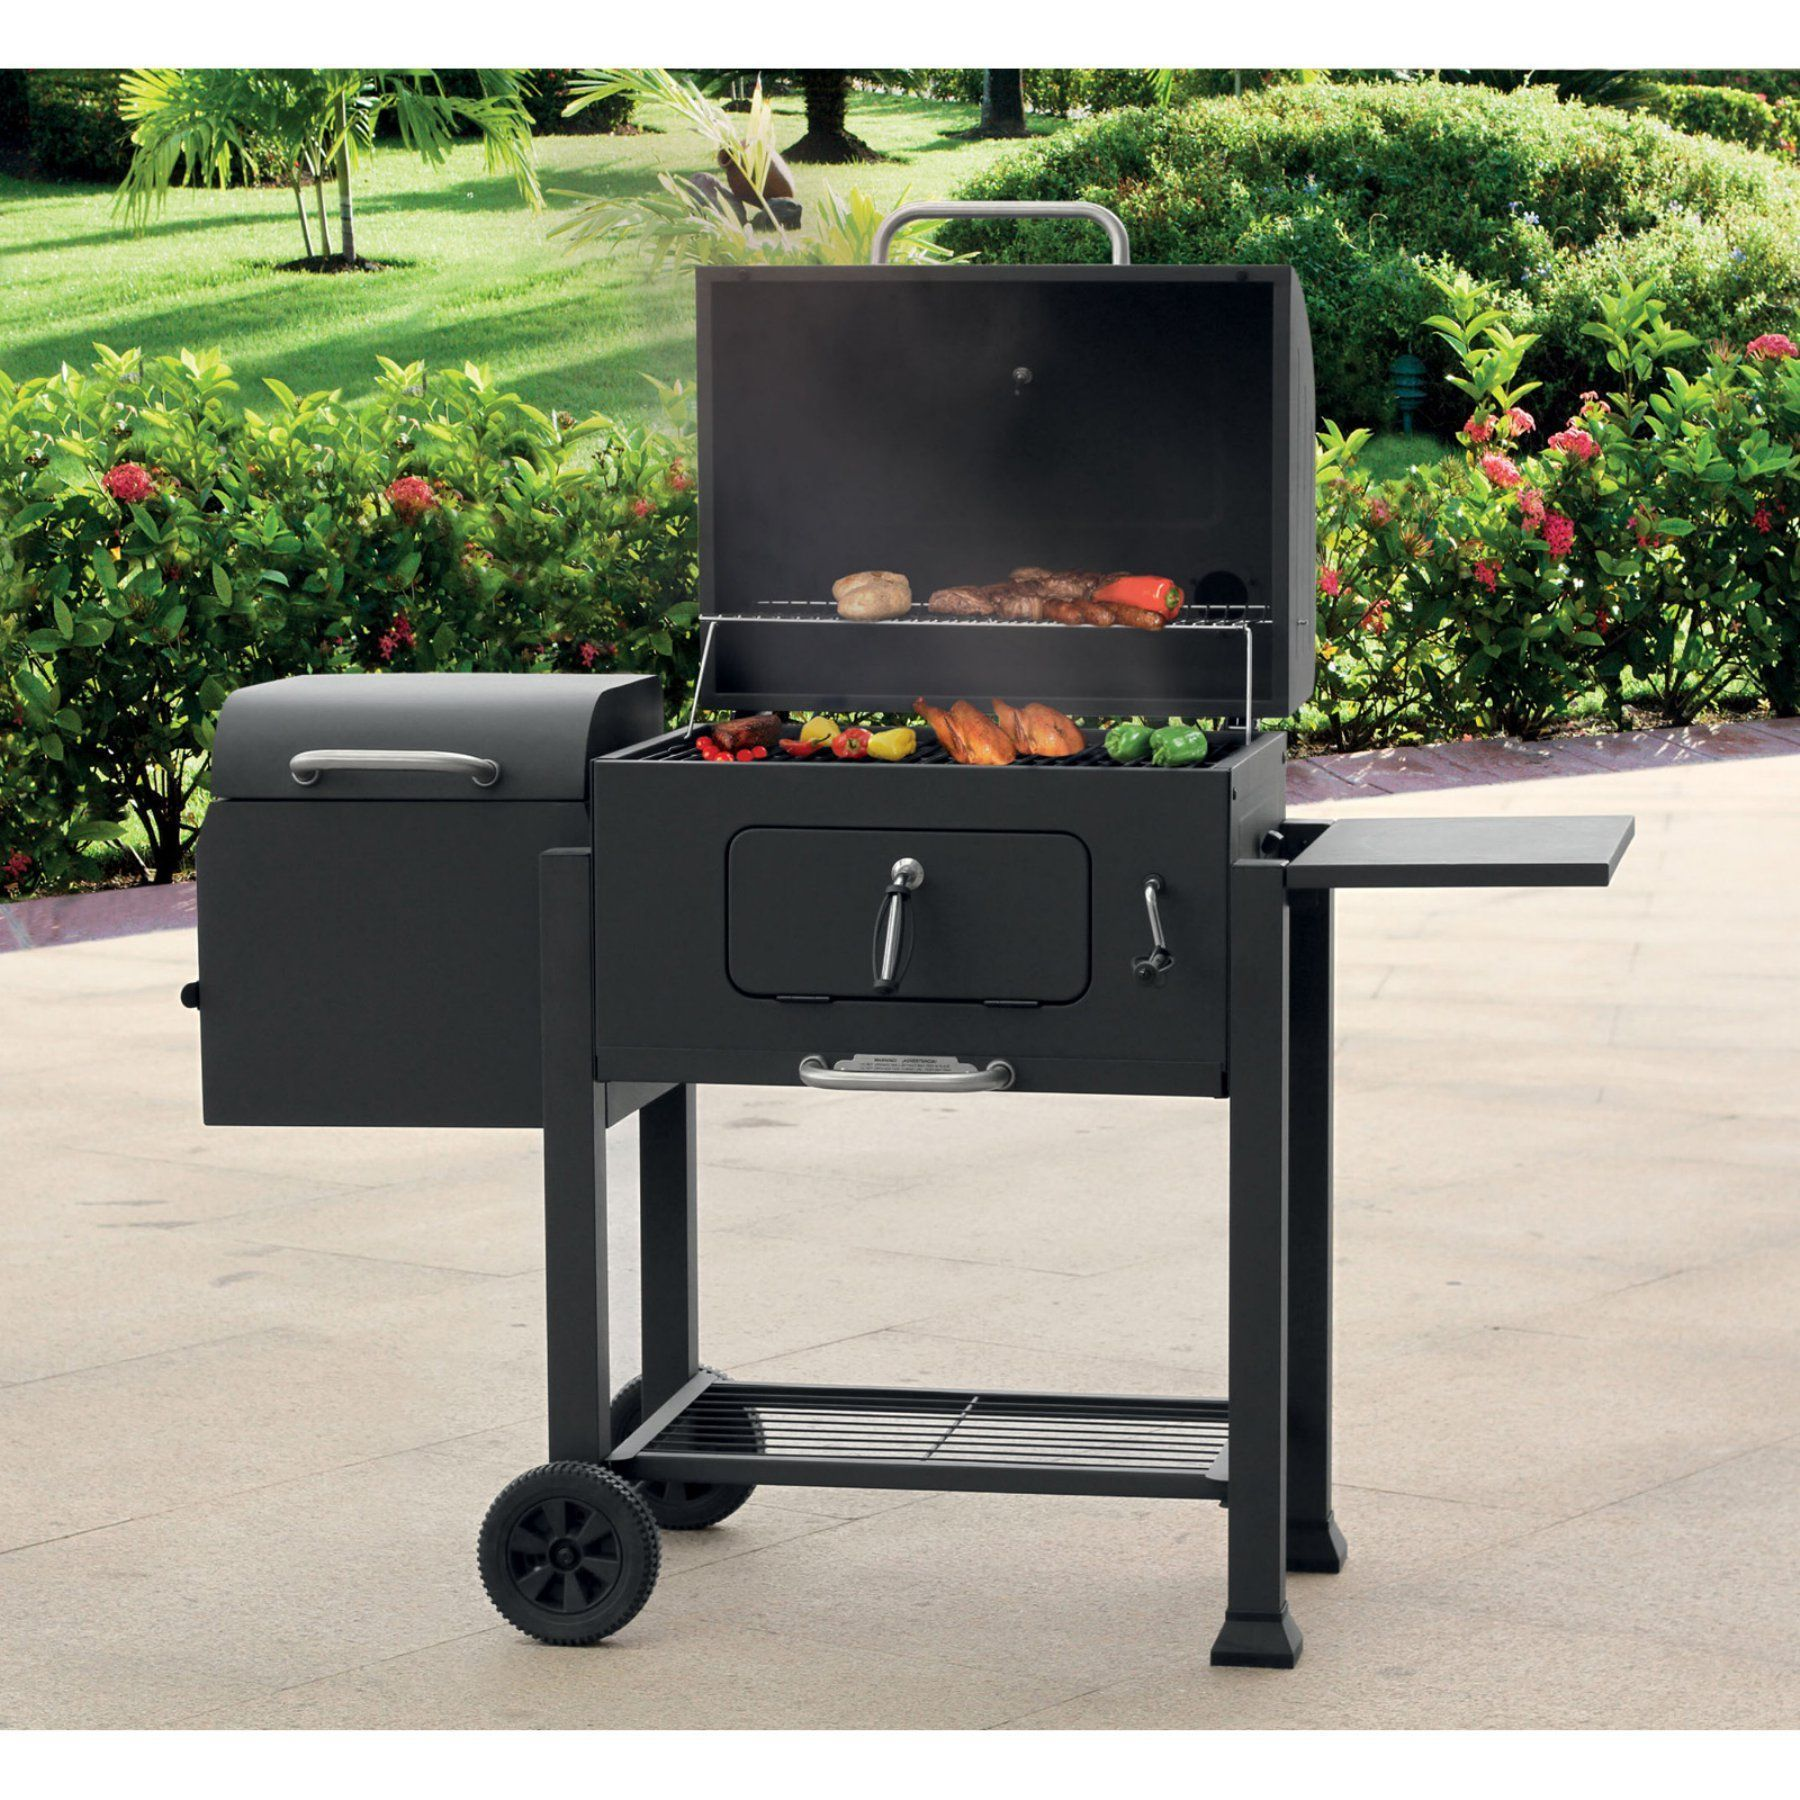 Landmann USA Vista Barbecue Charcoal Grill with fset Smoker Box